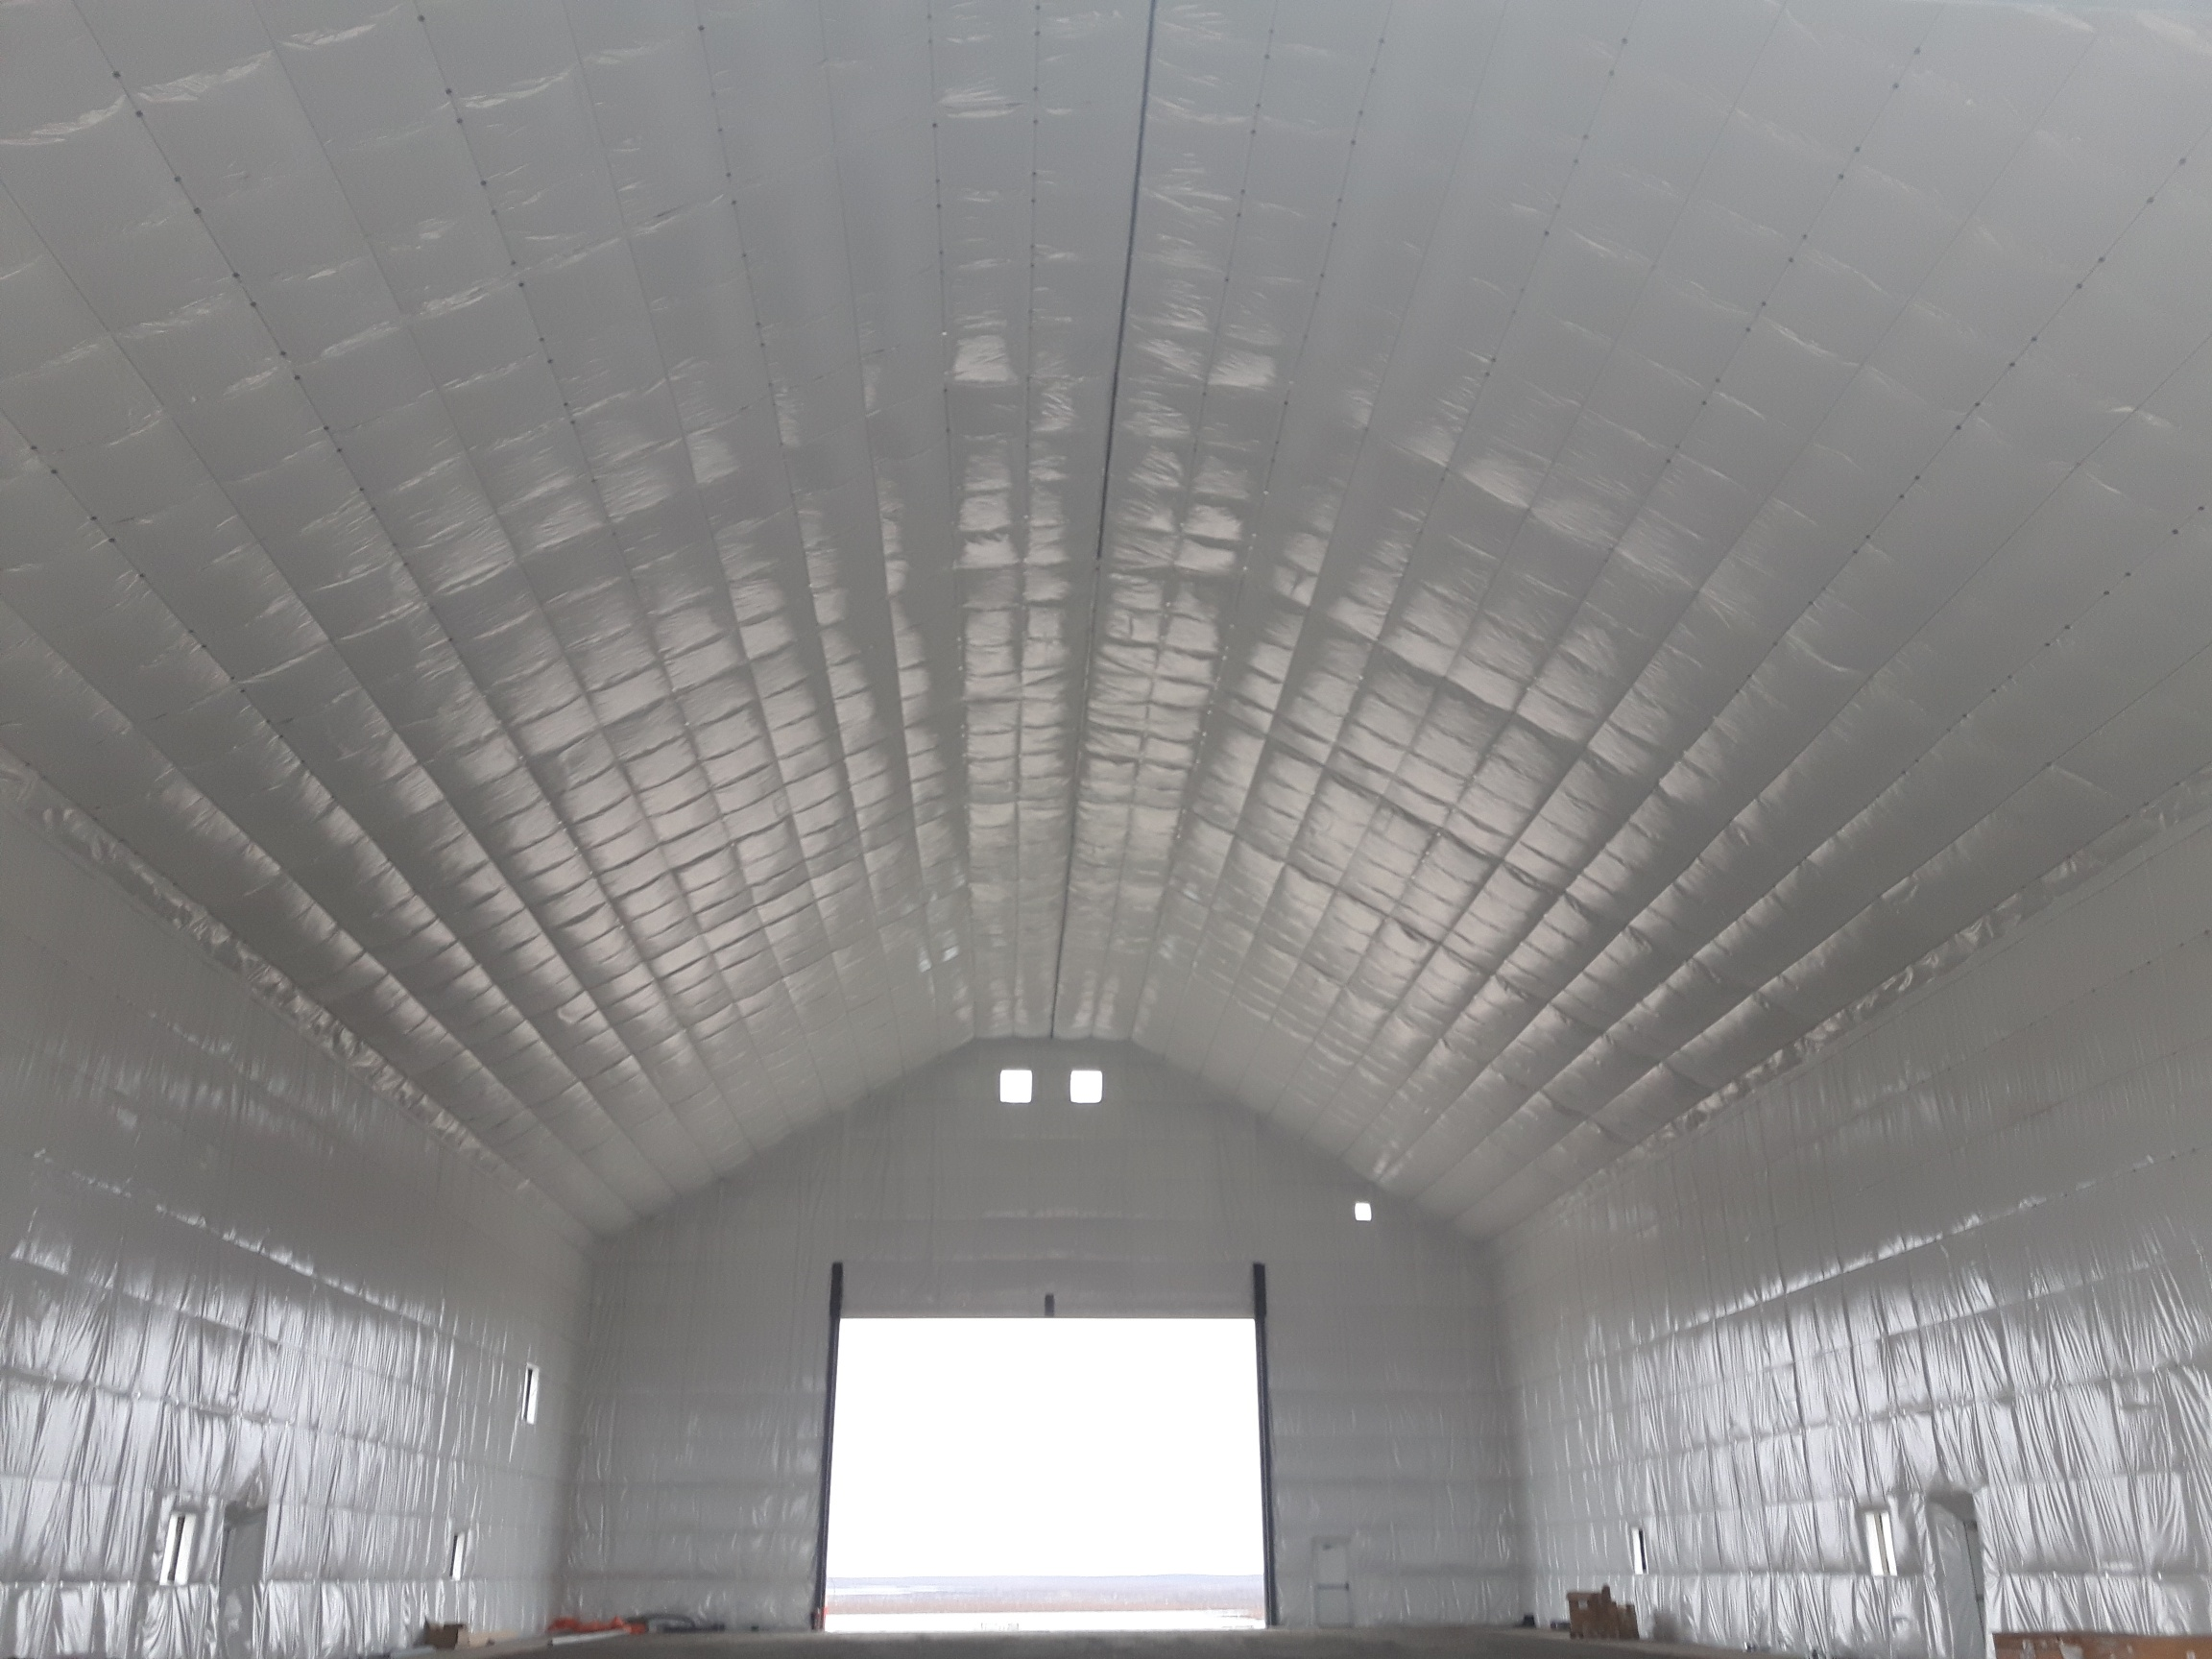 A Tensile Fabric Building Offers a Range of Benefits According to RealtimeCampaign.com